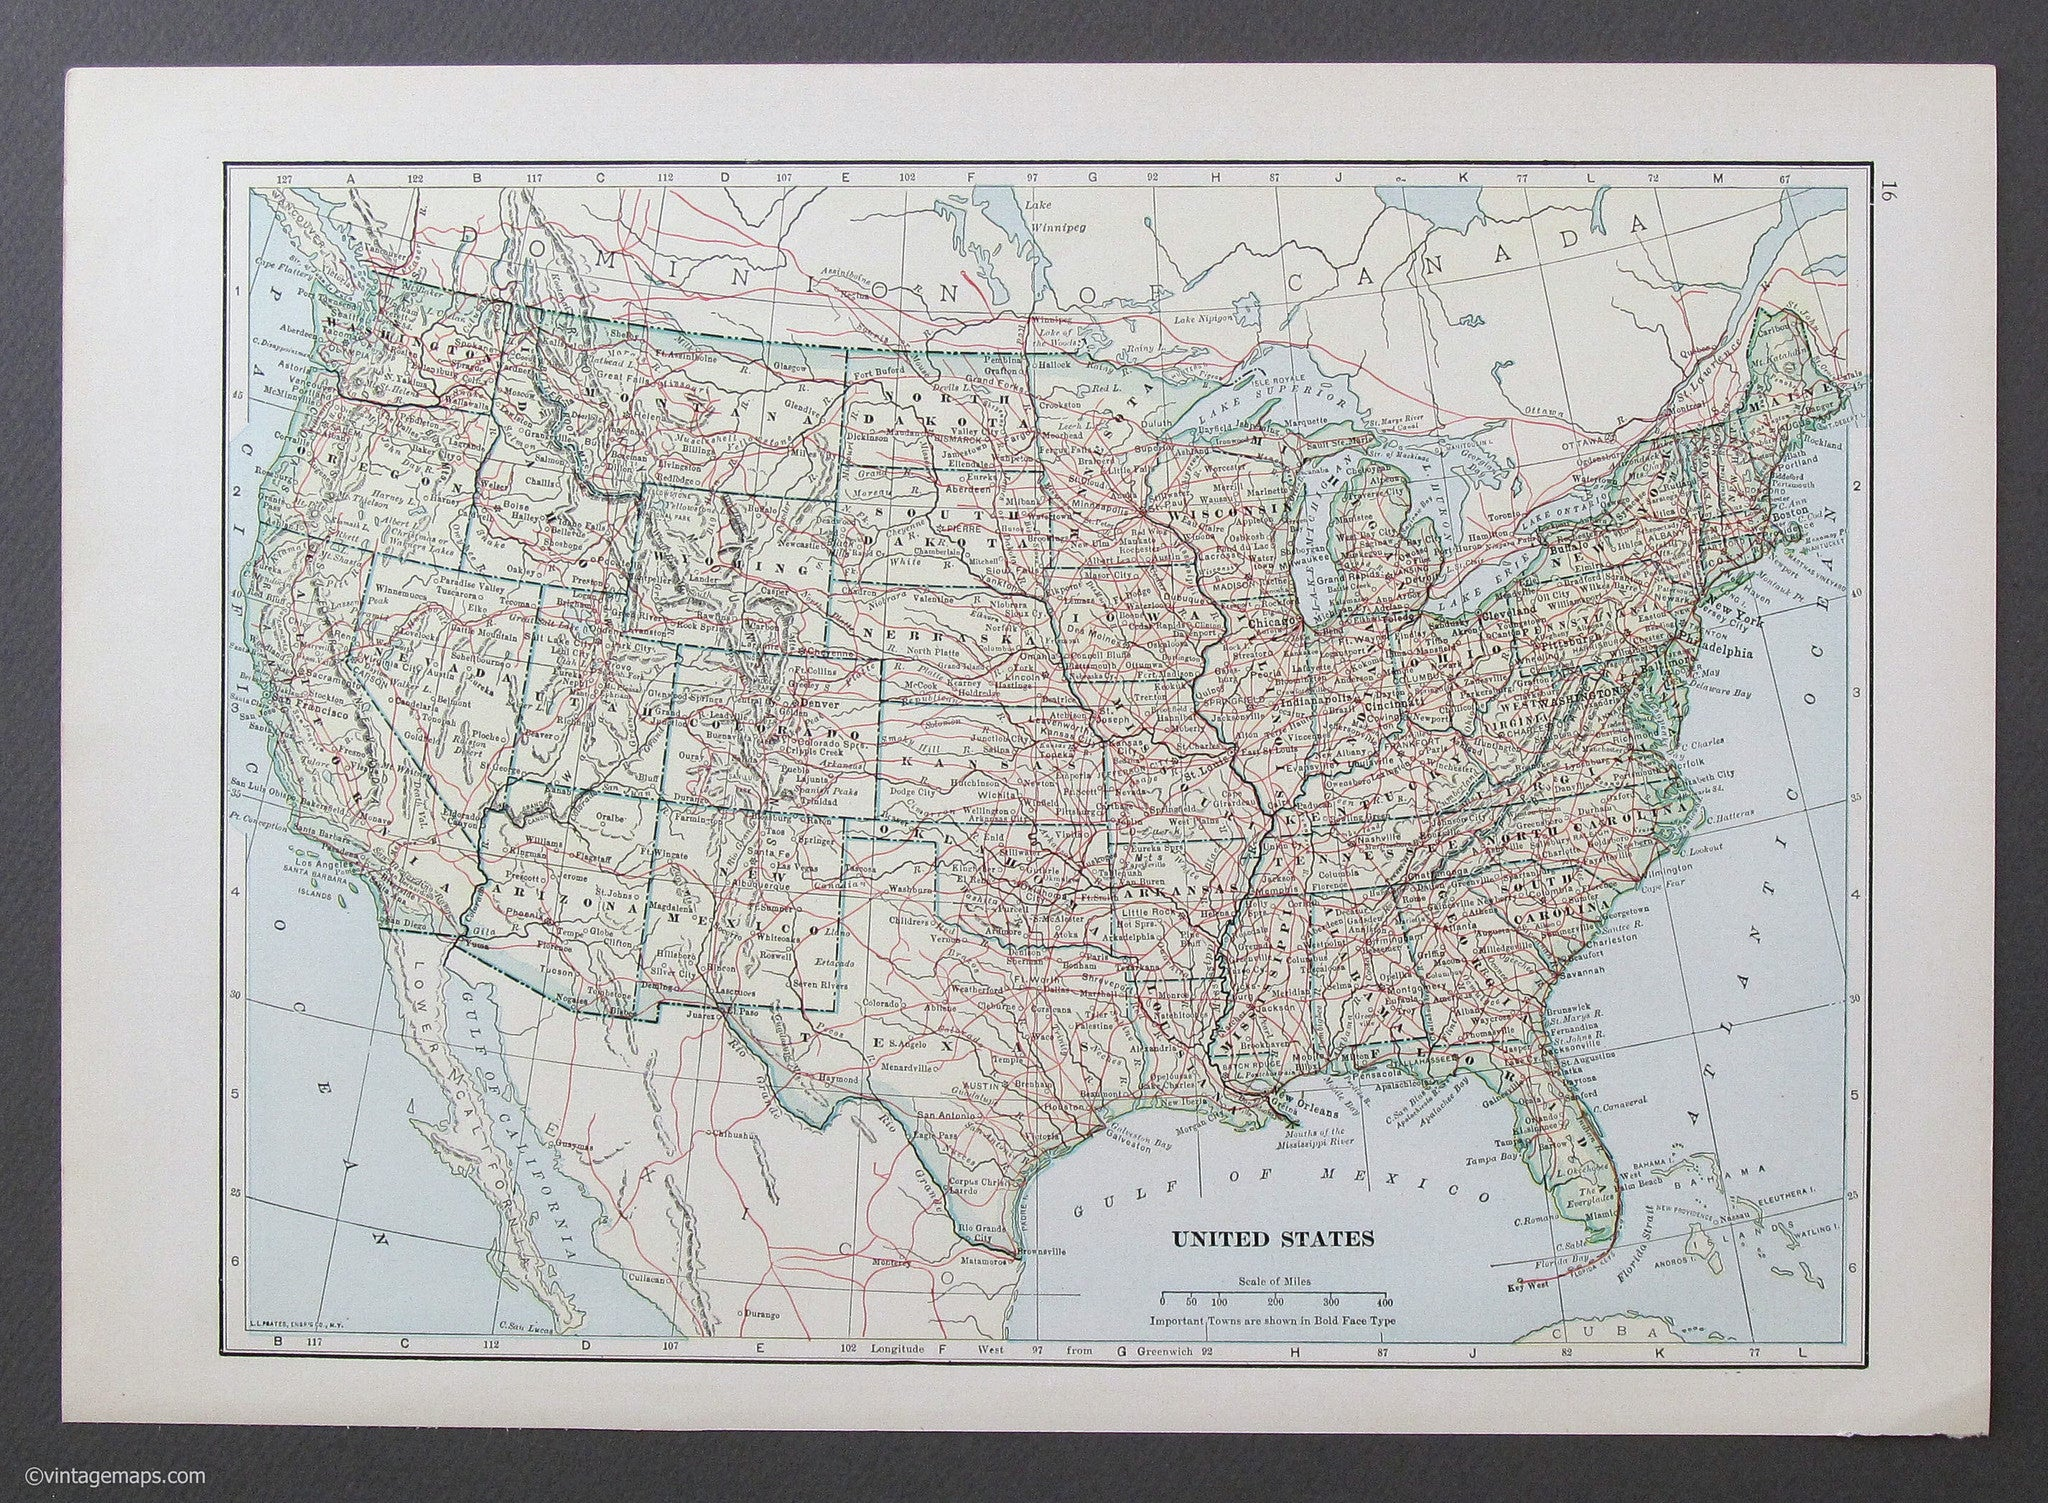 United States Map Picture Frame.United States 1933 Vintage Maps